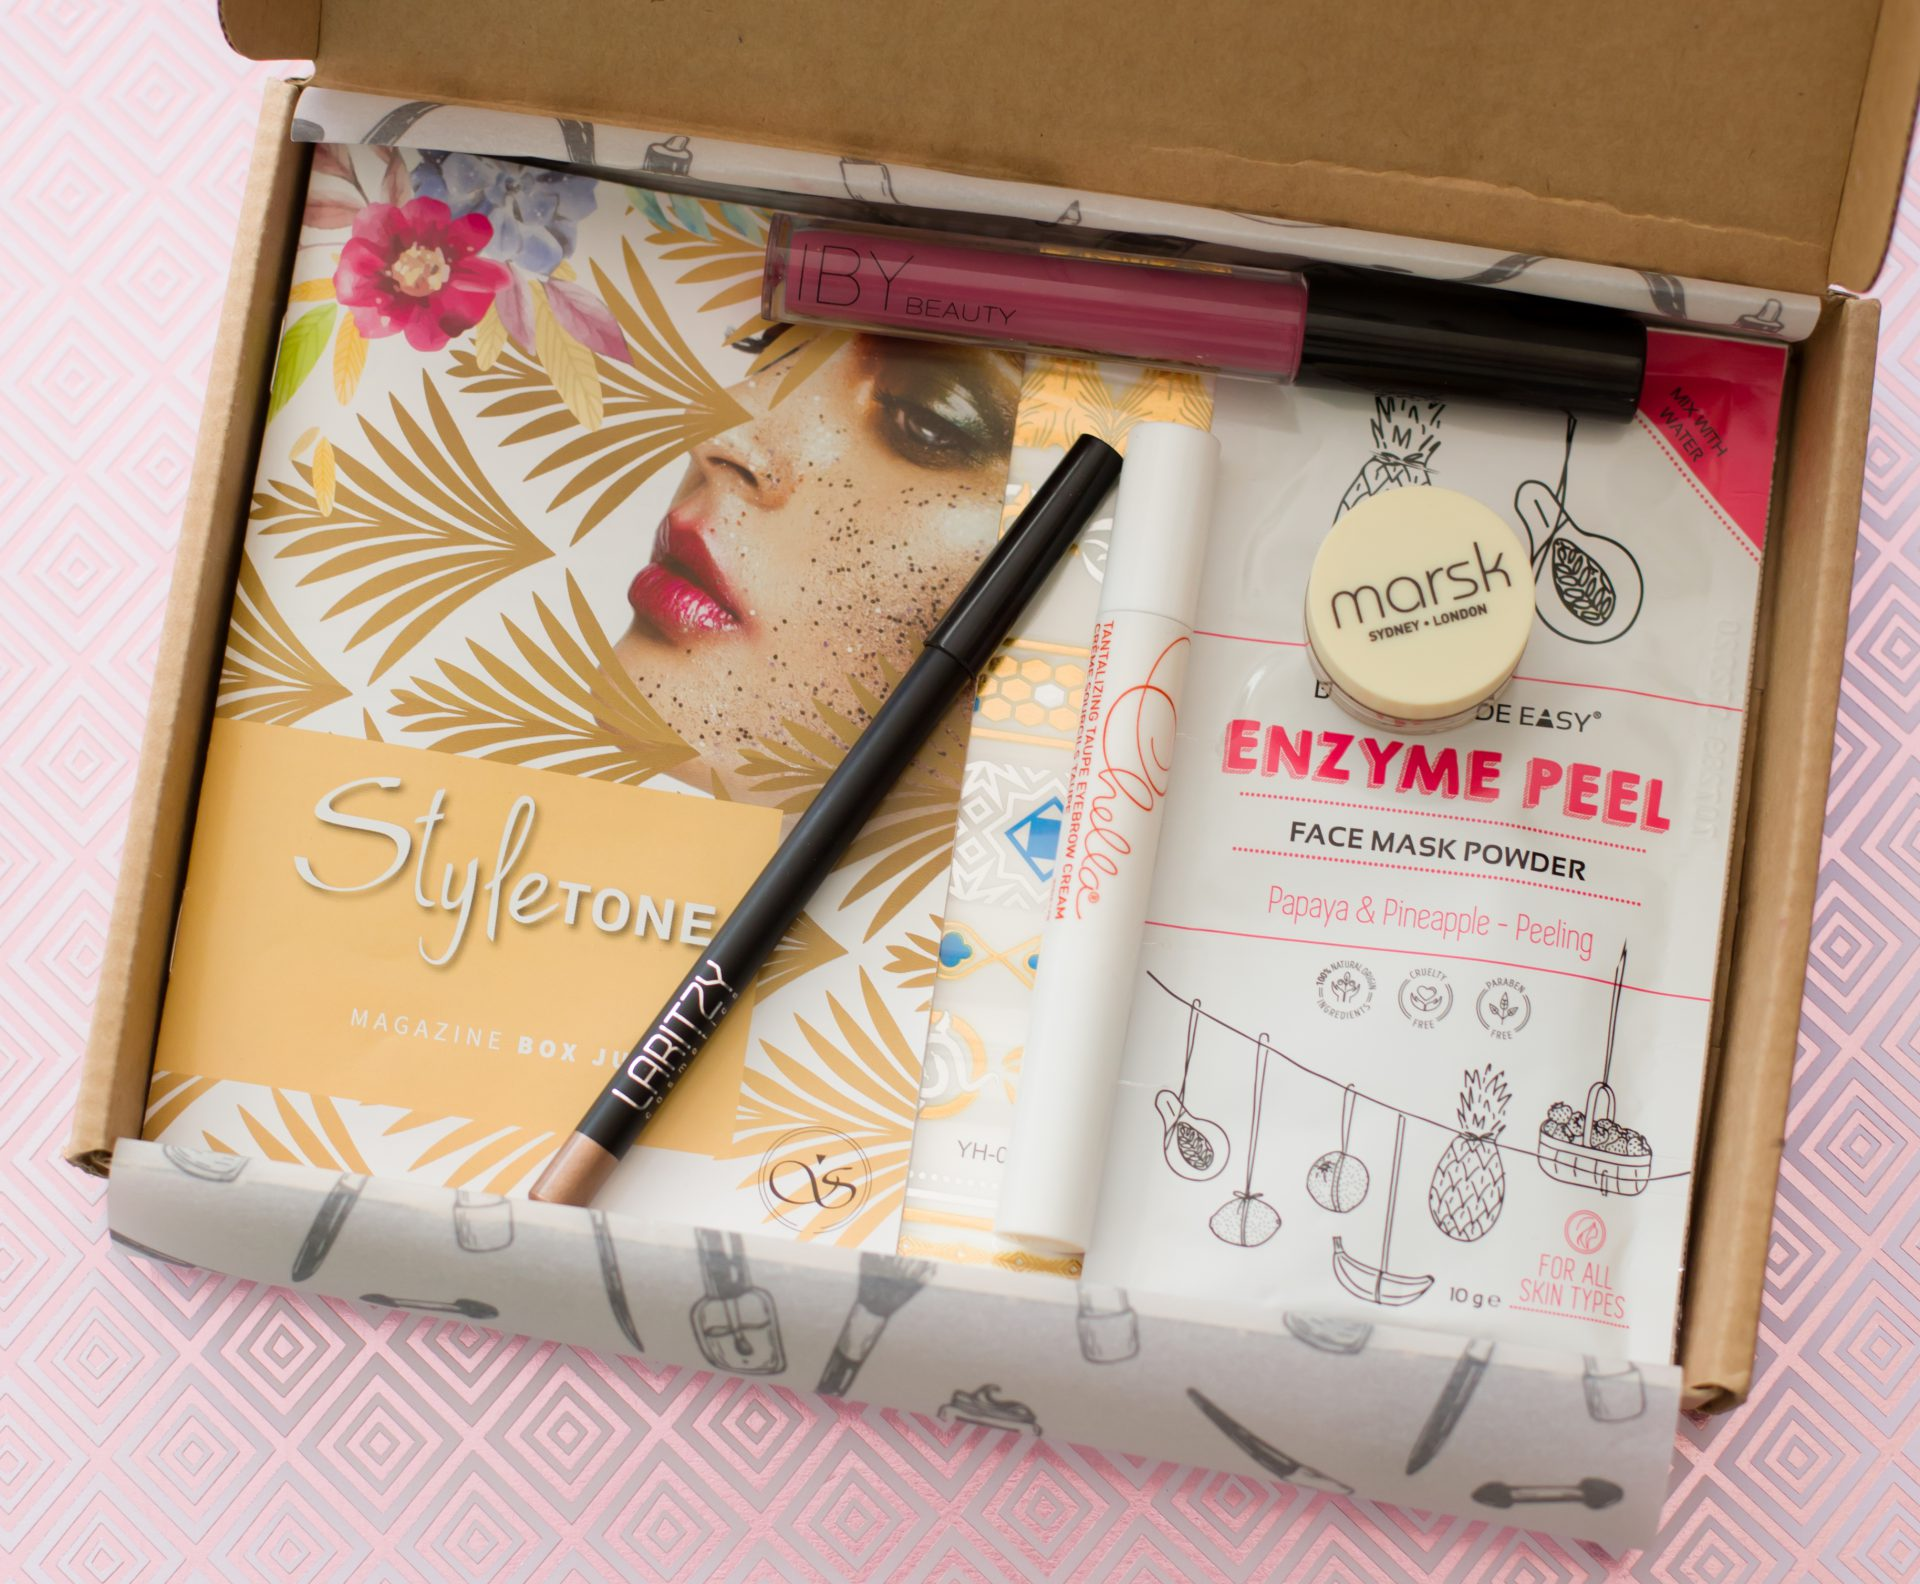 Alle producten in de box - StyleTone box juli 2018